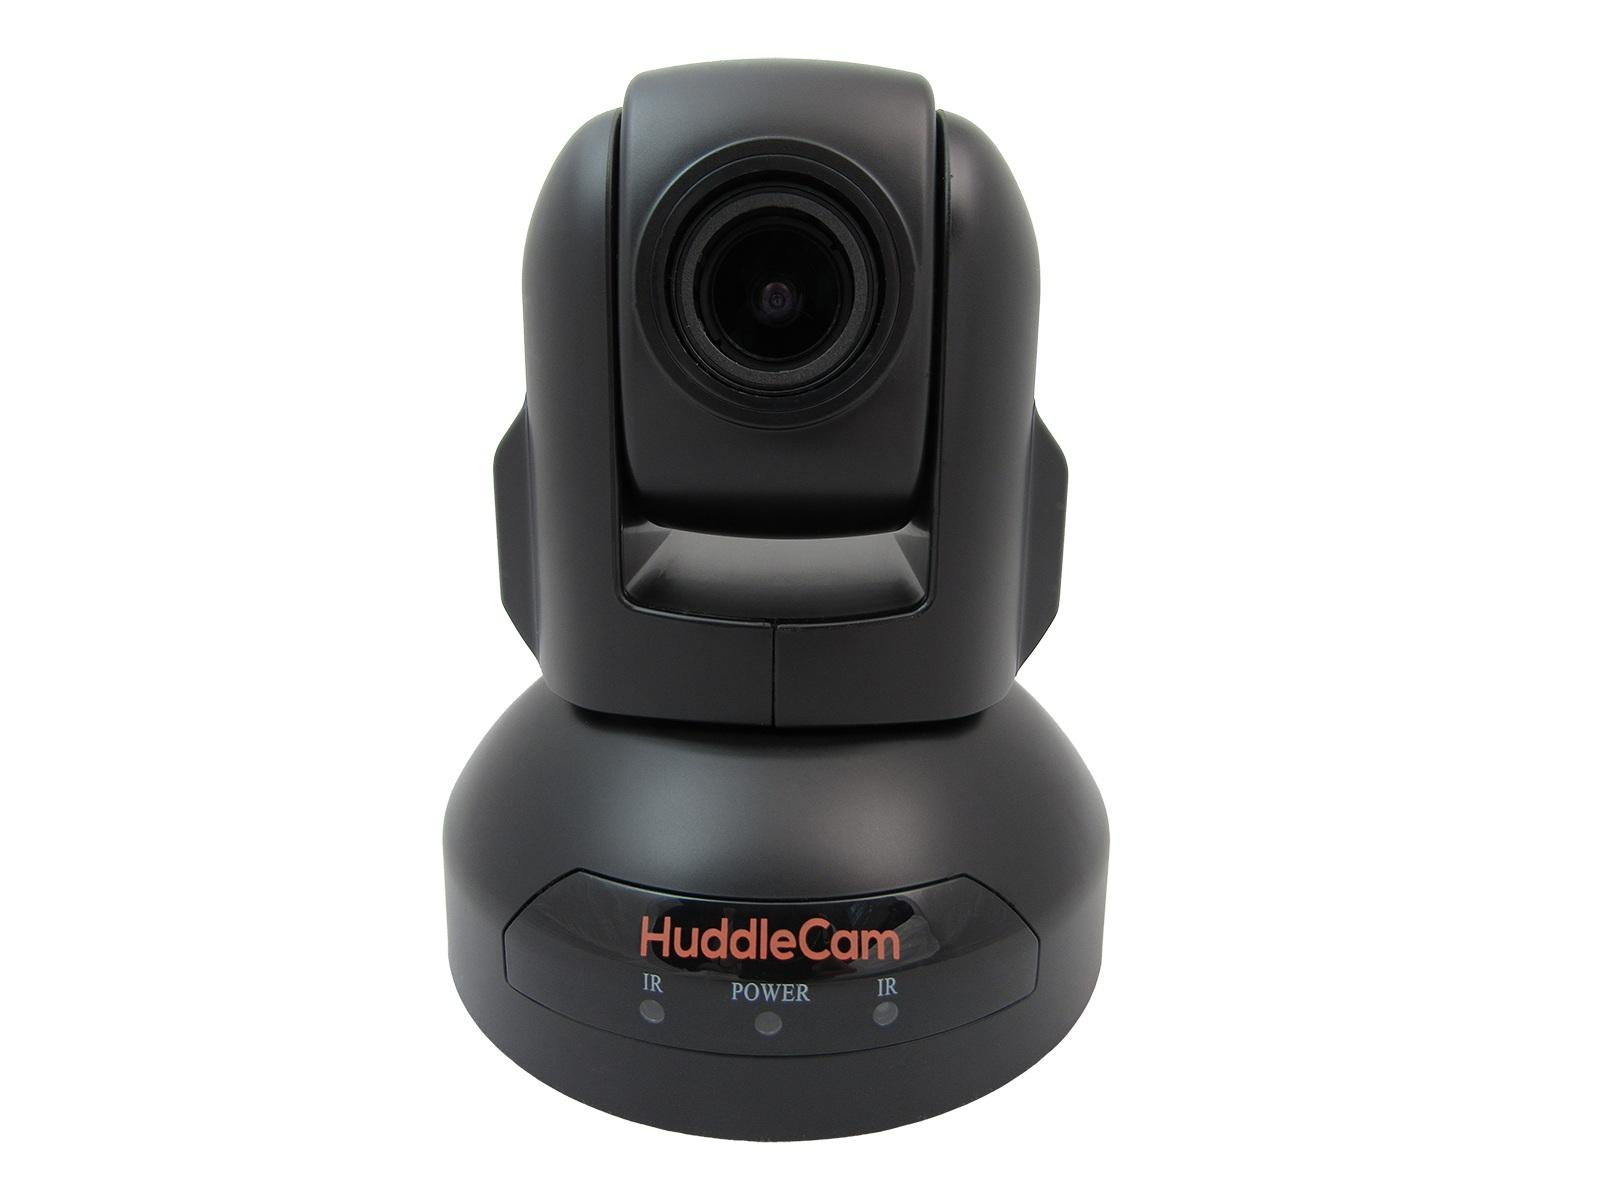 HuddleCamHD HC3X-BK-G2 3X Optical Zoom/USB 2.0/1920x1080p Camera/Black